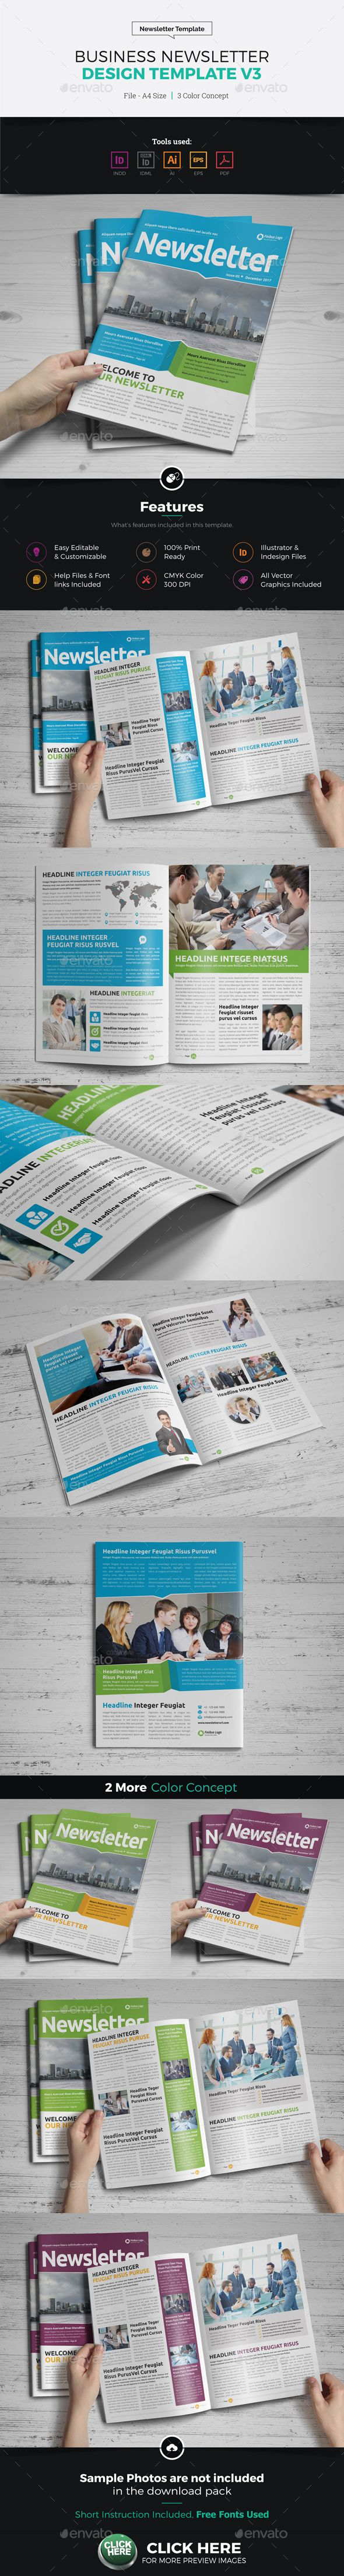 Newsletter Design Template v3 by Jbn-Comilla Business Newsletter Design v3 is Creative, Clean and Modern 8 Pages Corporate & Business Newsletter Design Template. Ready to use